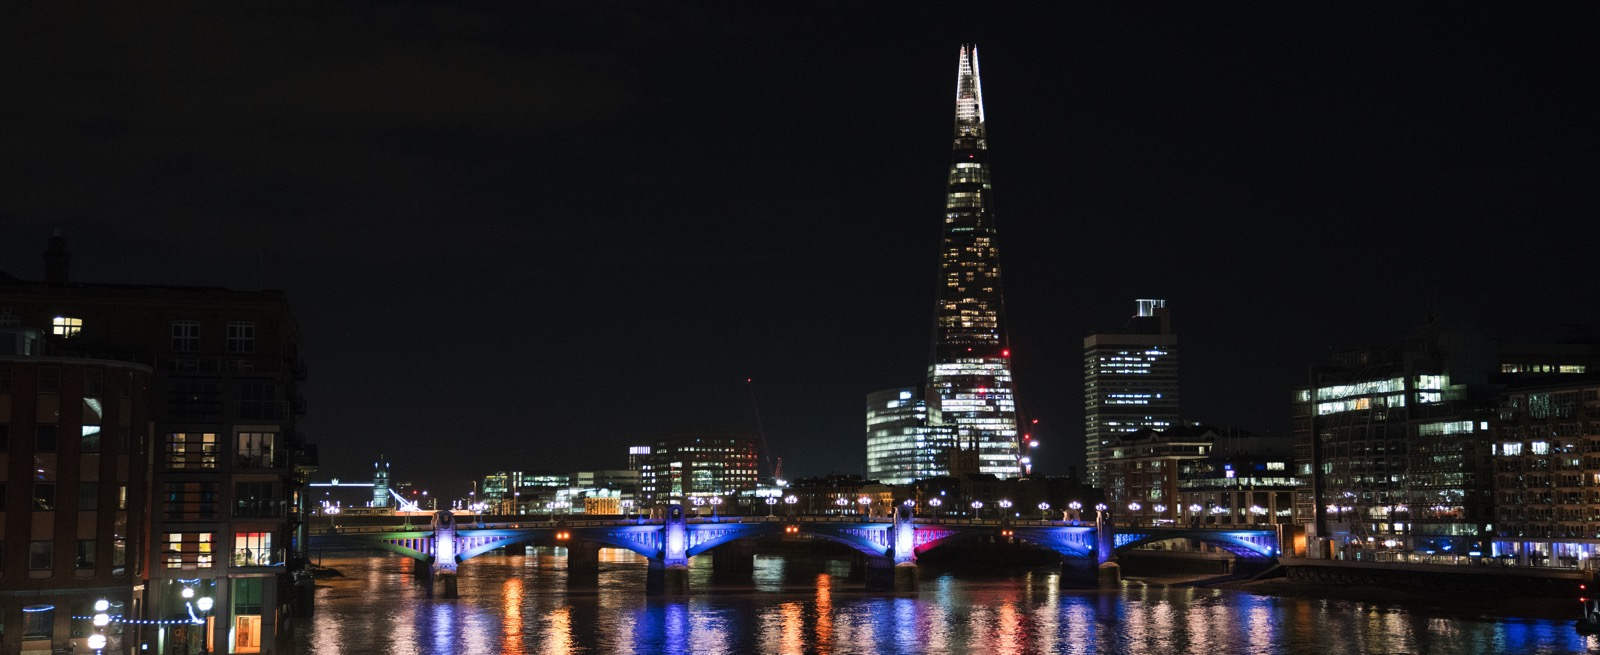 The London skyline with The Shard, which may post-date most of your last visits to the city, as viewed from Millennium Bridge.   (London, United Kingdom.)